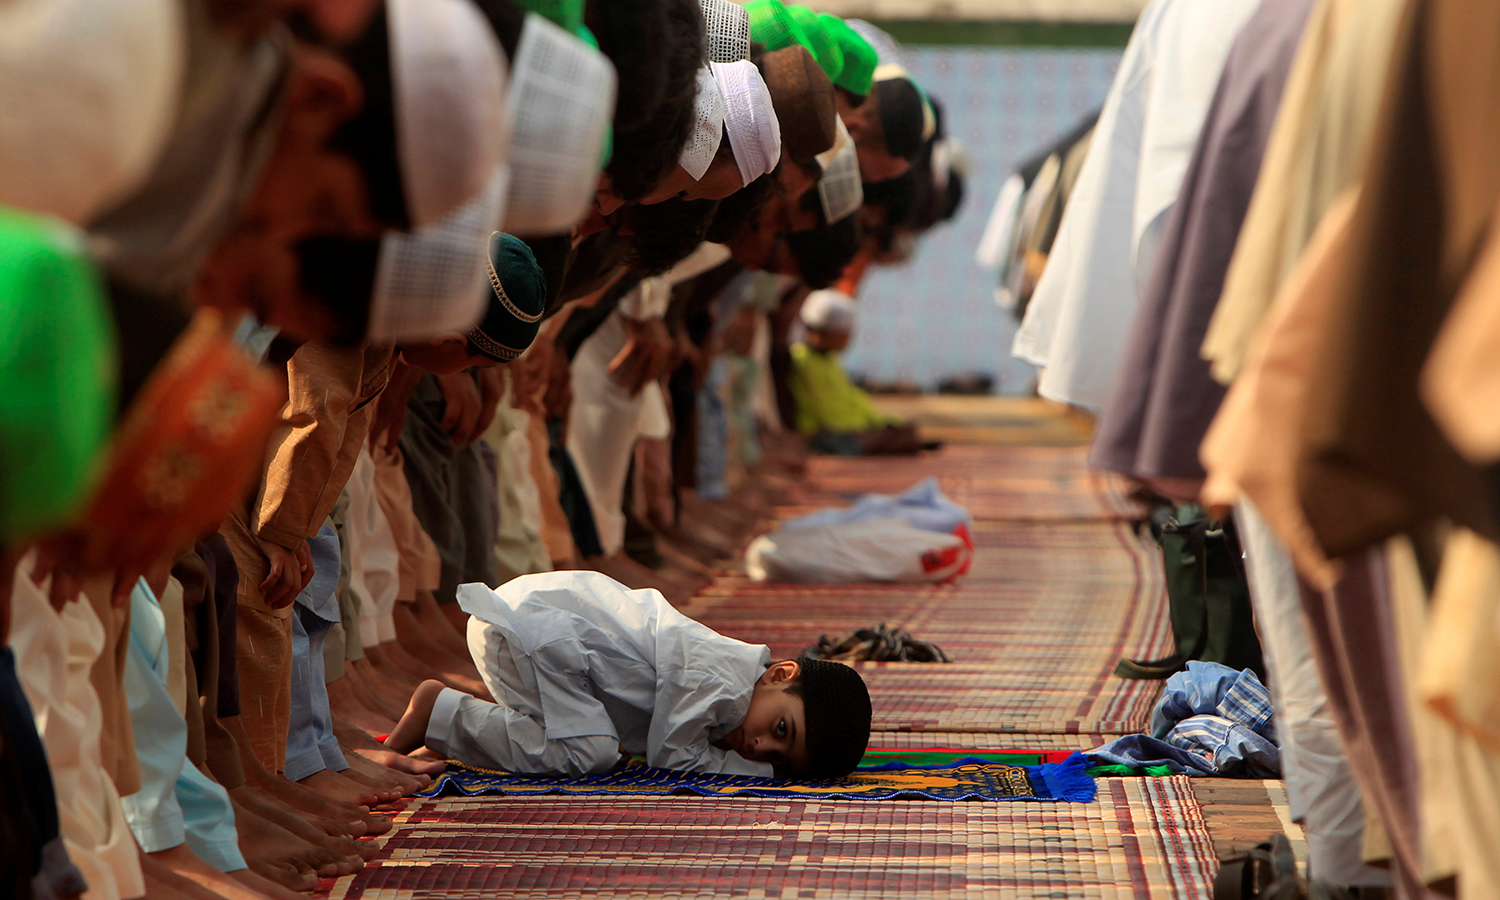 RAWALPINDI: A boy attends Eidul Fitr prayers with others at Jamia Masjid on Wednesday. —REUTERS/Faisal Mahmood